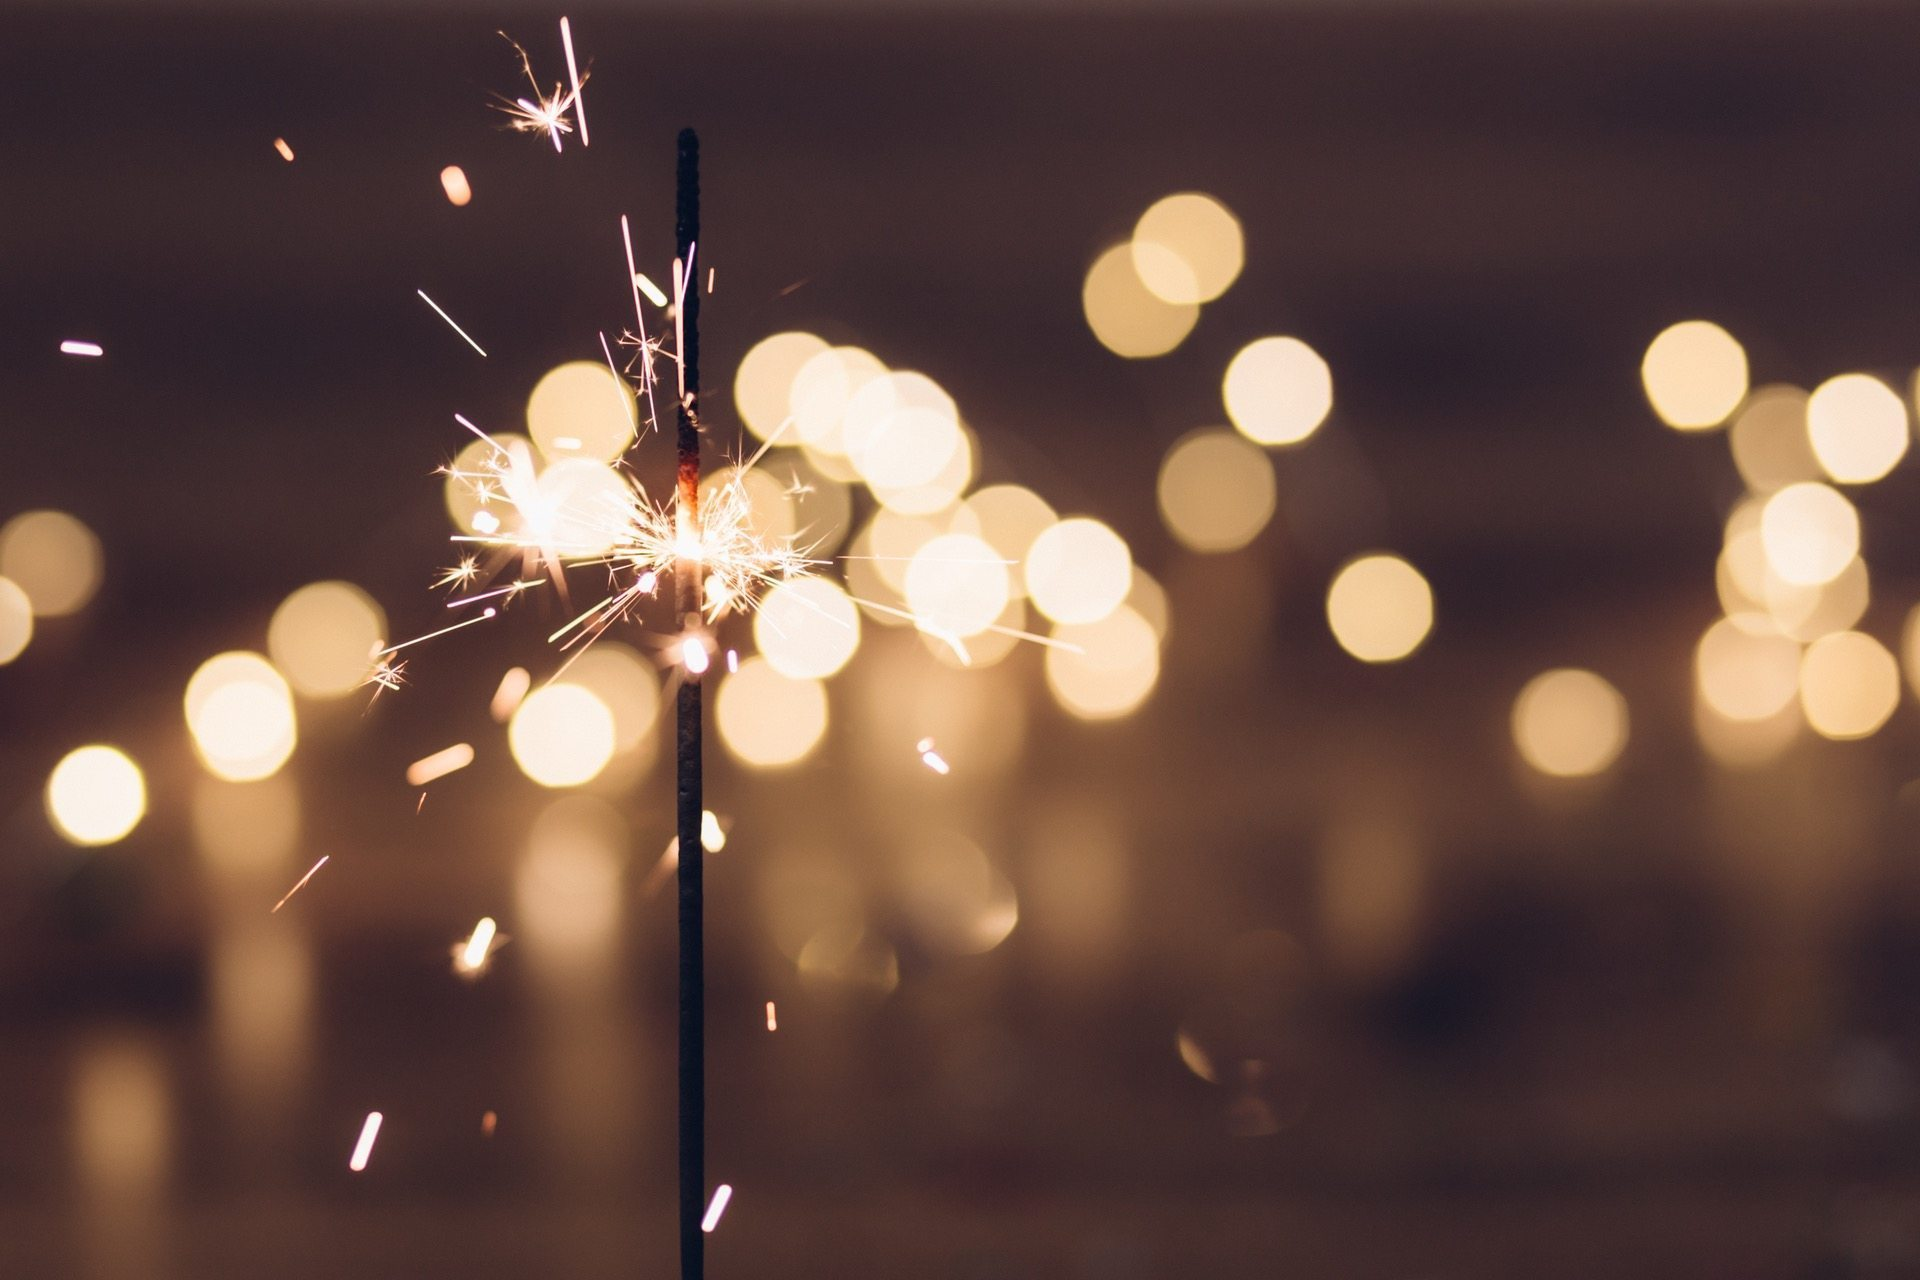 Image: sparkler at night with lights in the background